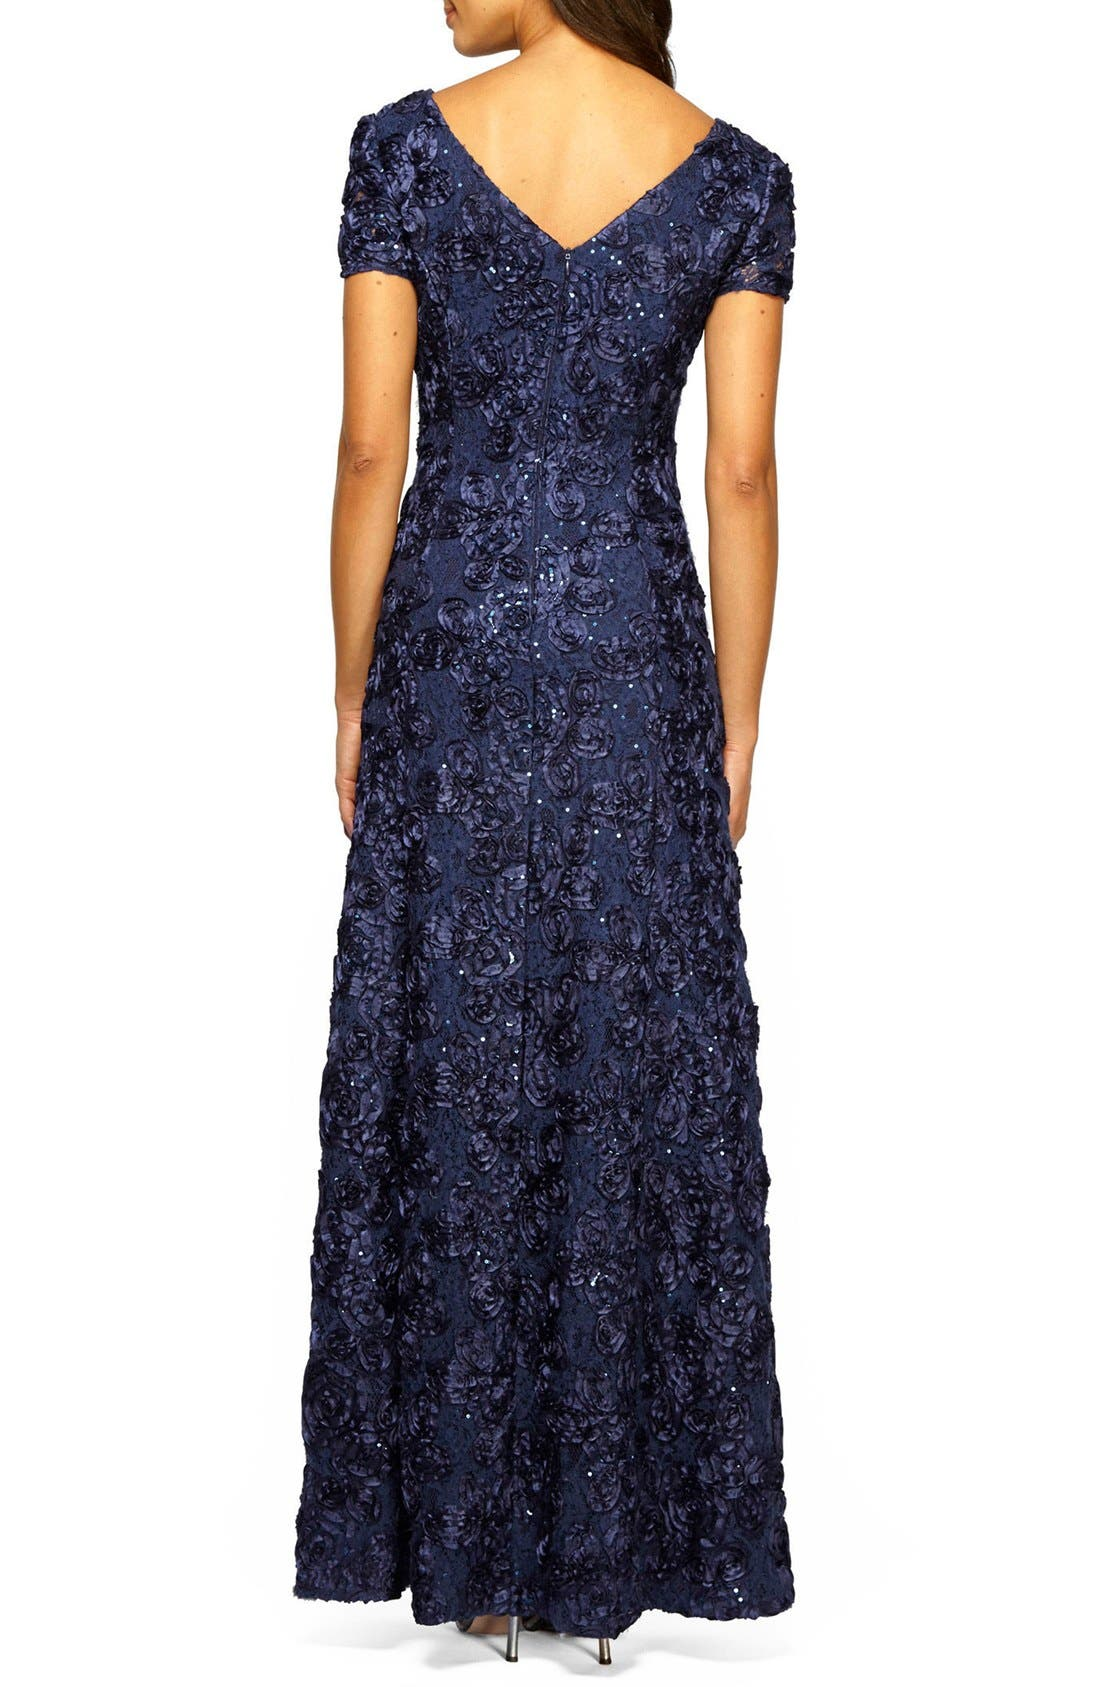 ALEX EVENINGS, Embellished Lace Gown, Alternate thumbnail 4, color, NAVY